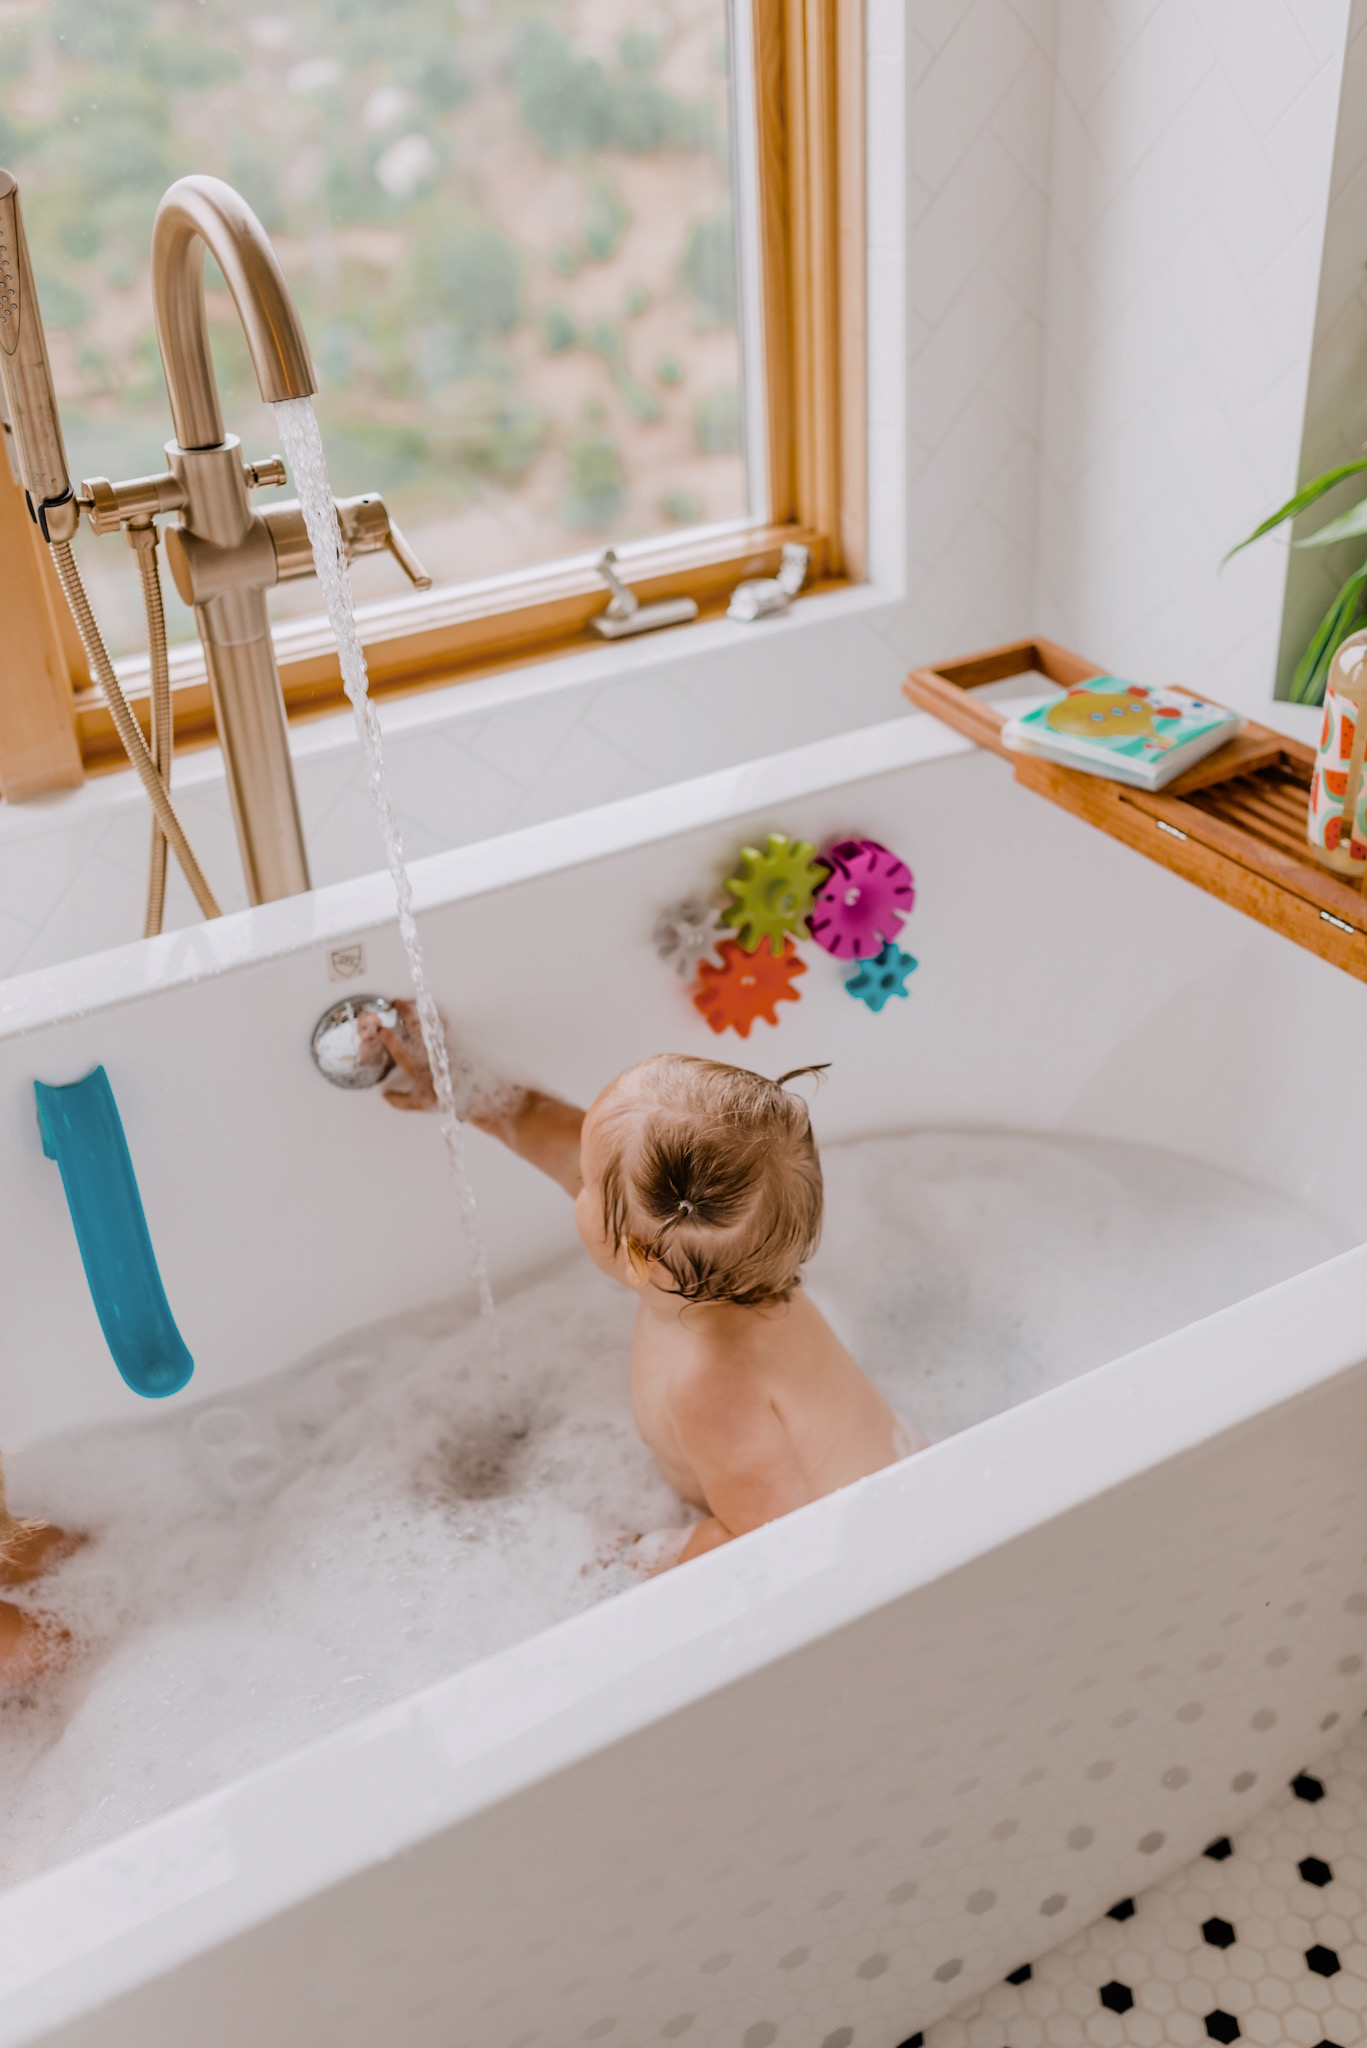 Baby Bath Toys by popular San Diego motherhood blog, Navy Grace: image of two kids sitting in the tub and taking a bubble bath while playing with various amazon bath toys.